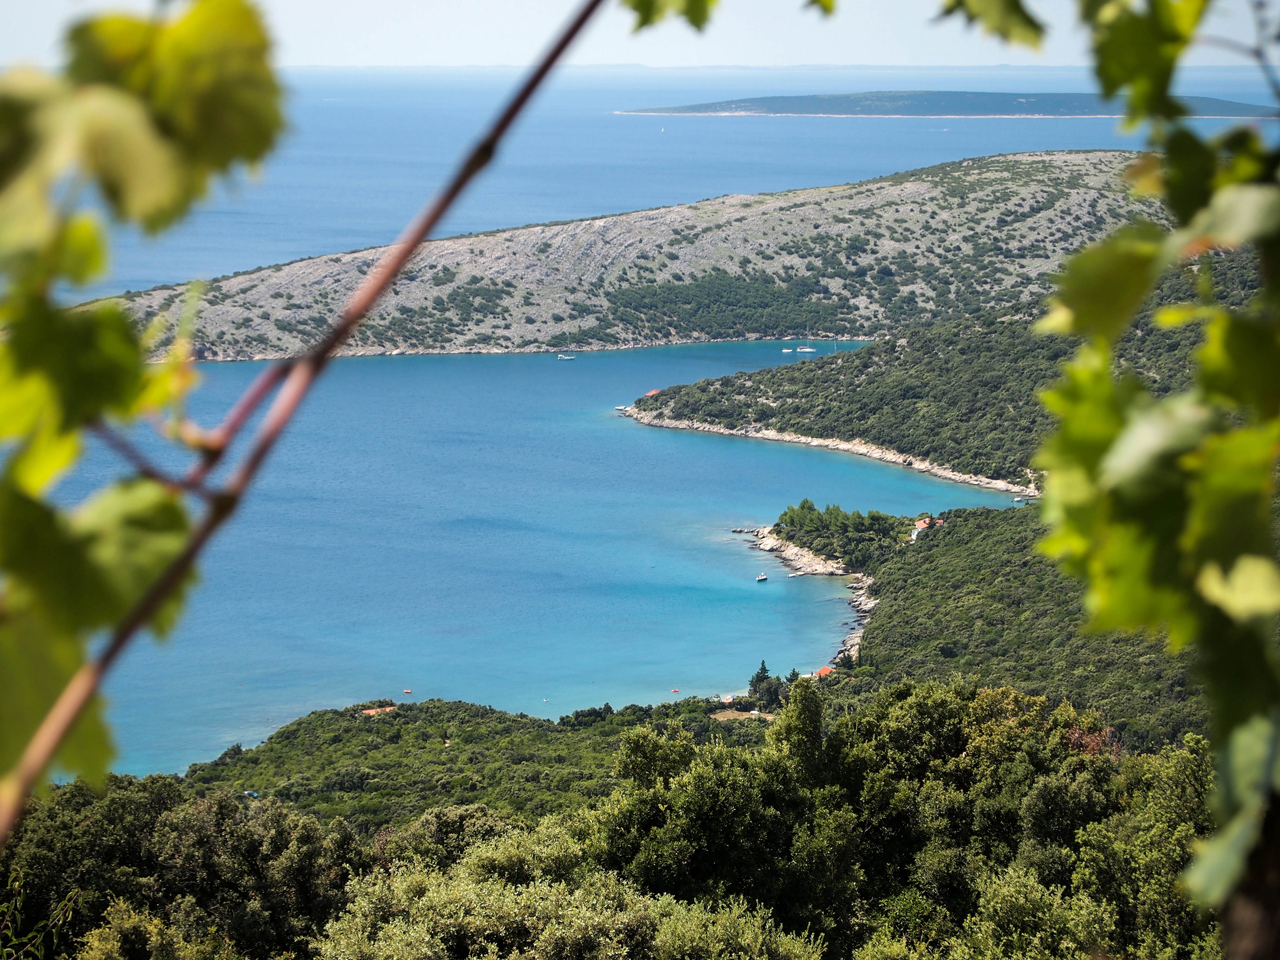 Stunning views on the island of Cres